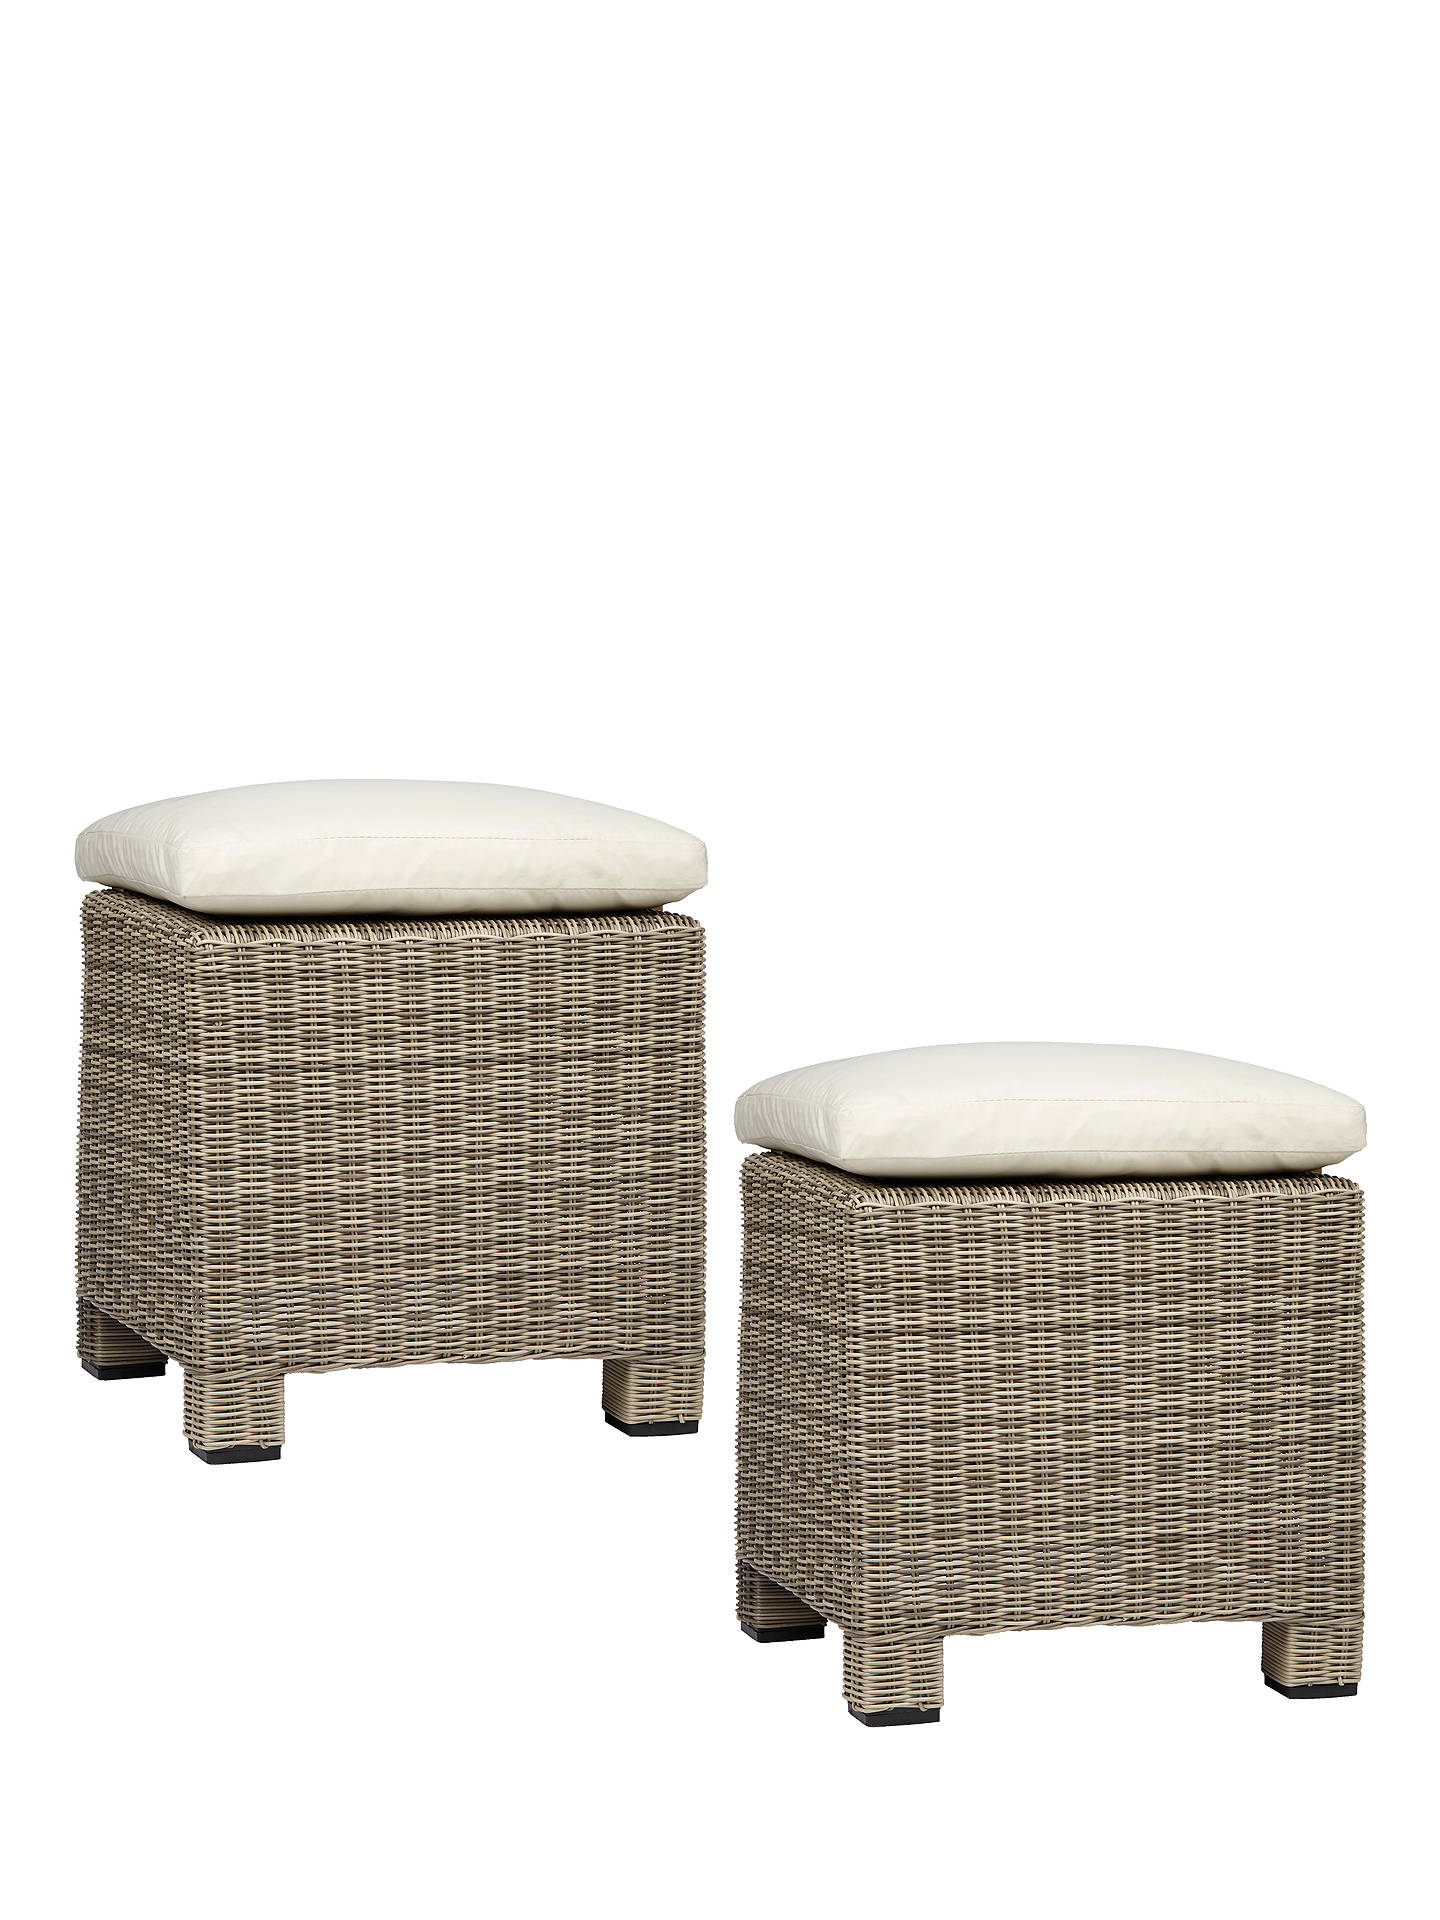 Buy John Lewis & Partners Dante Garden Foot Stool, Set of 2, Natural Online at johnlewis.com